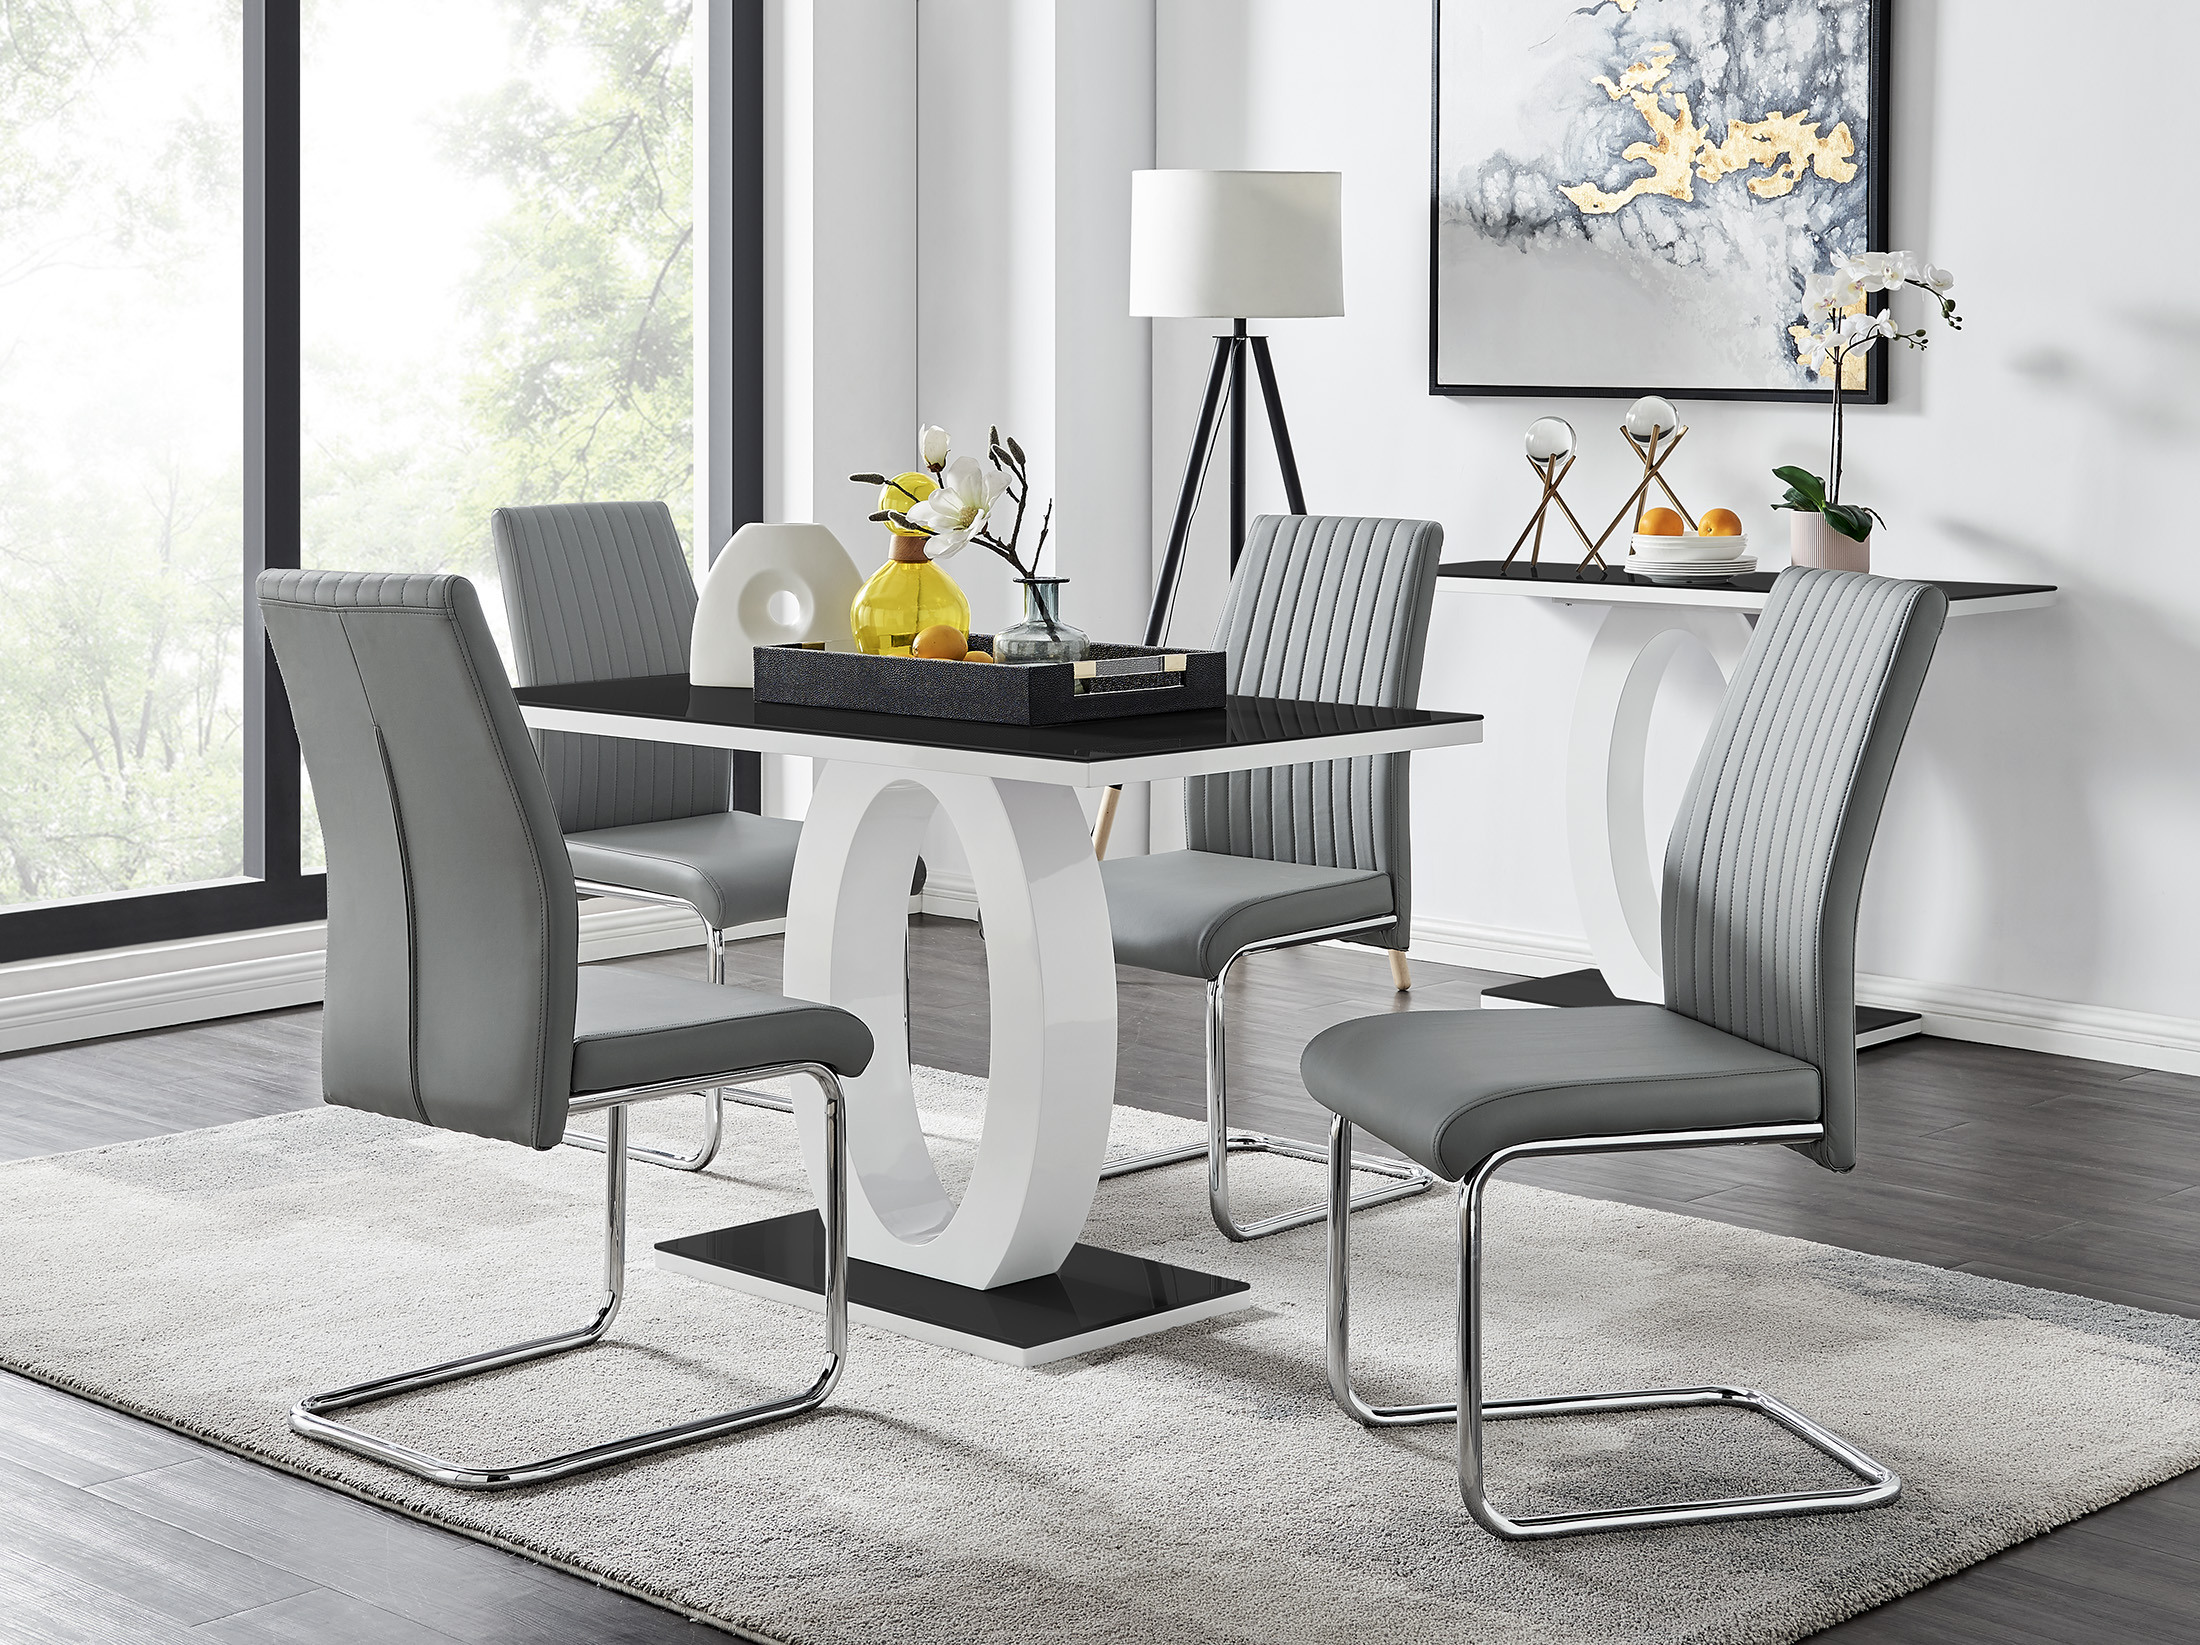 Black White High Gloss Dining Table, Black And White Dining Room Set